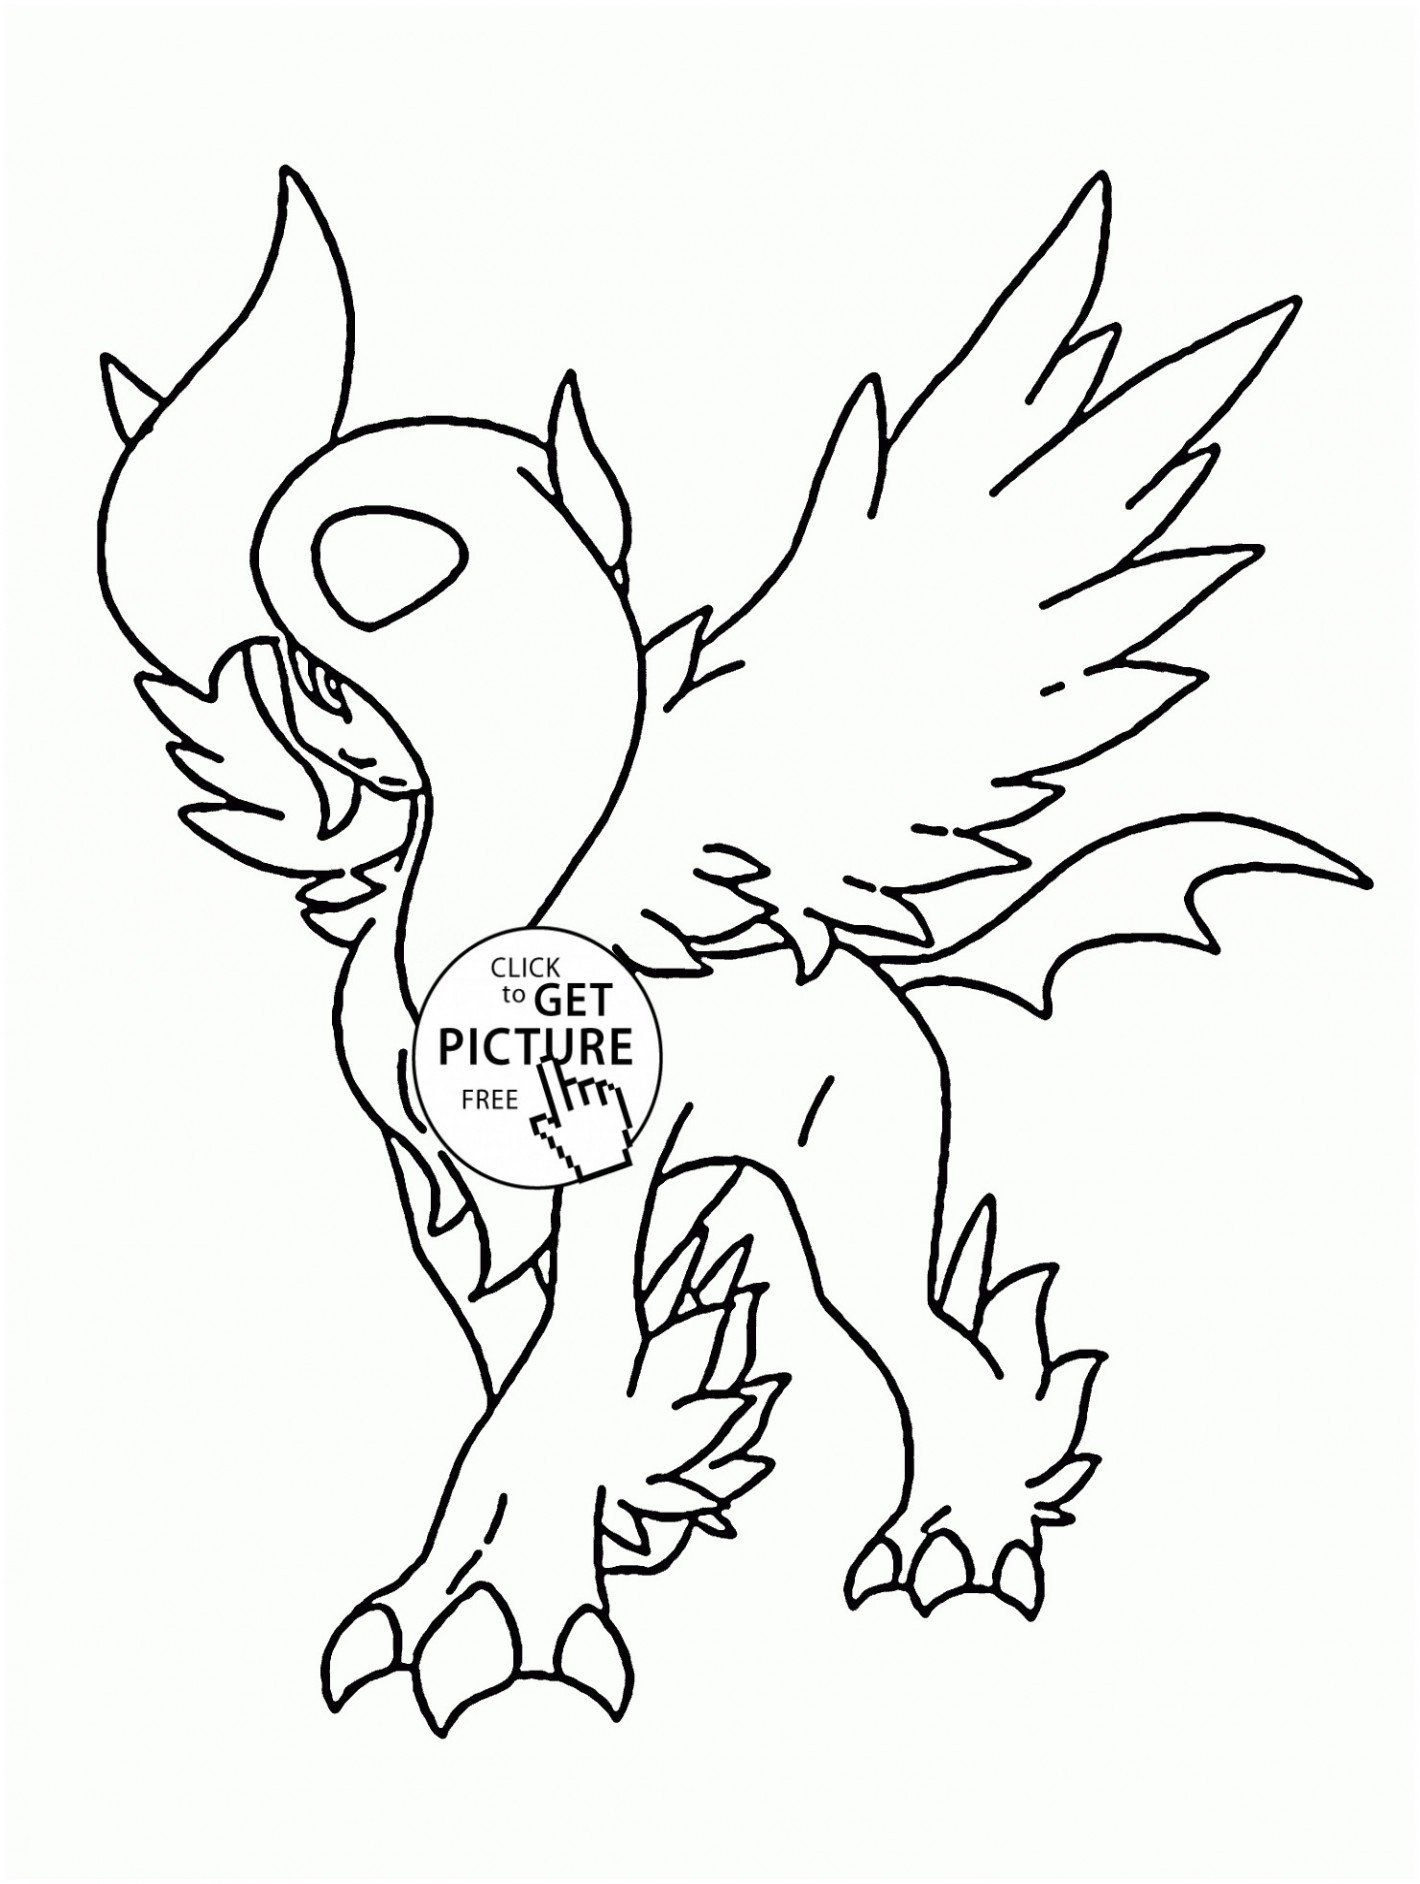 Pokemon Printable Coloring Pages New Pokemon Coloring Page Best Vases Flower Vase Coloring Page Pages Pokemon Coloring Pages Pokemon Coloring Easy Drawings